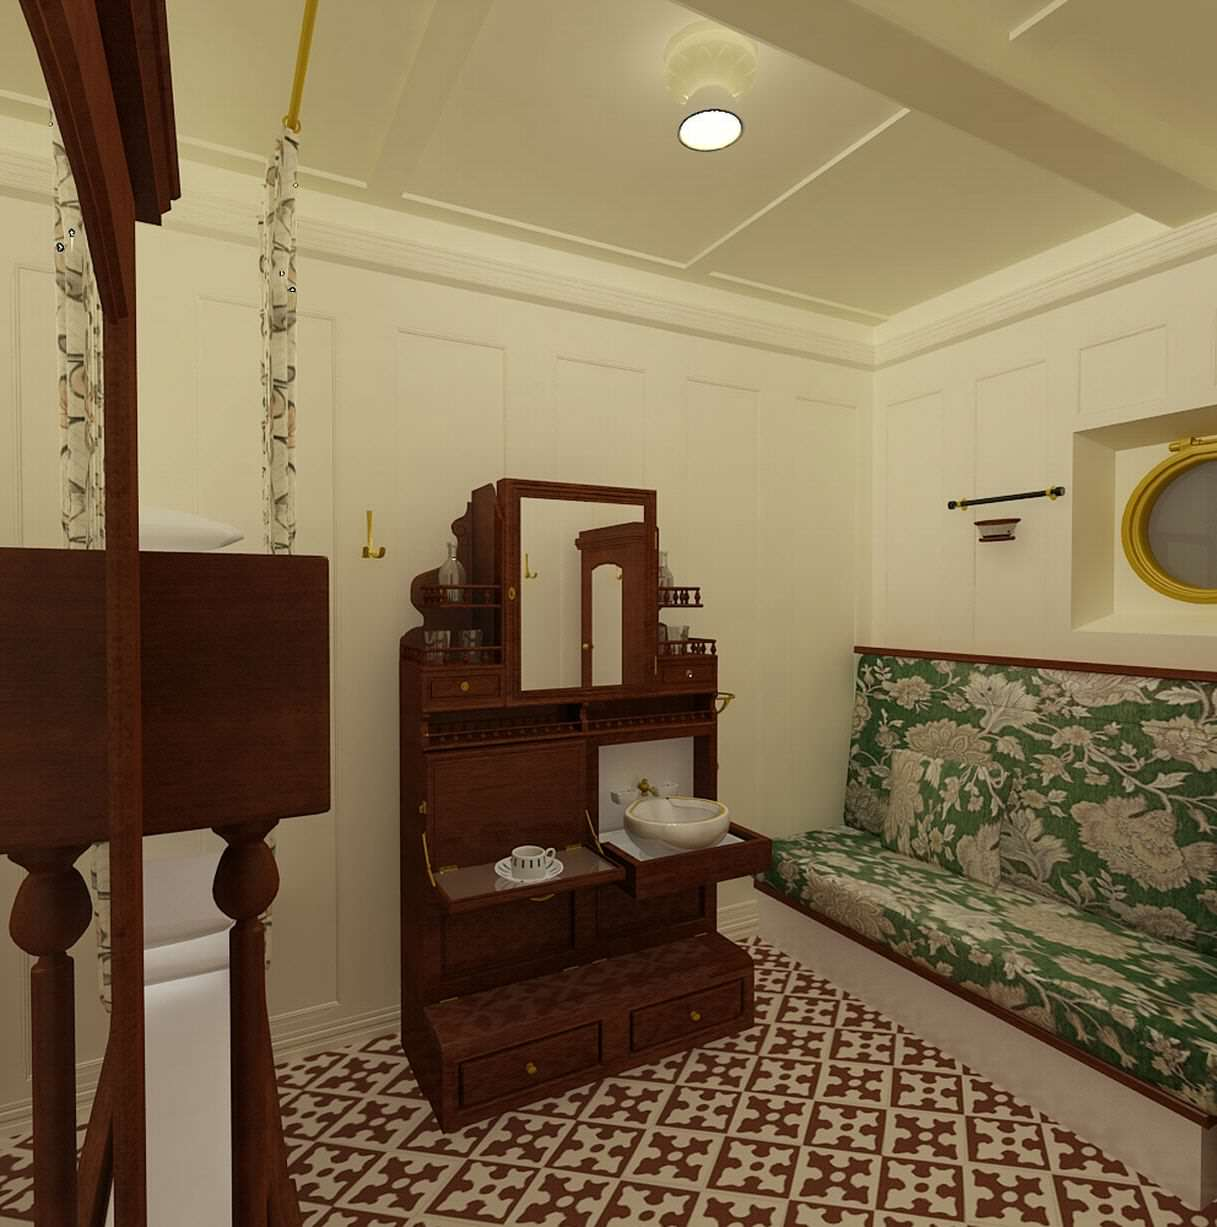 Incredible New Photos Give First Look Inside Titanic 2 titanic new 7